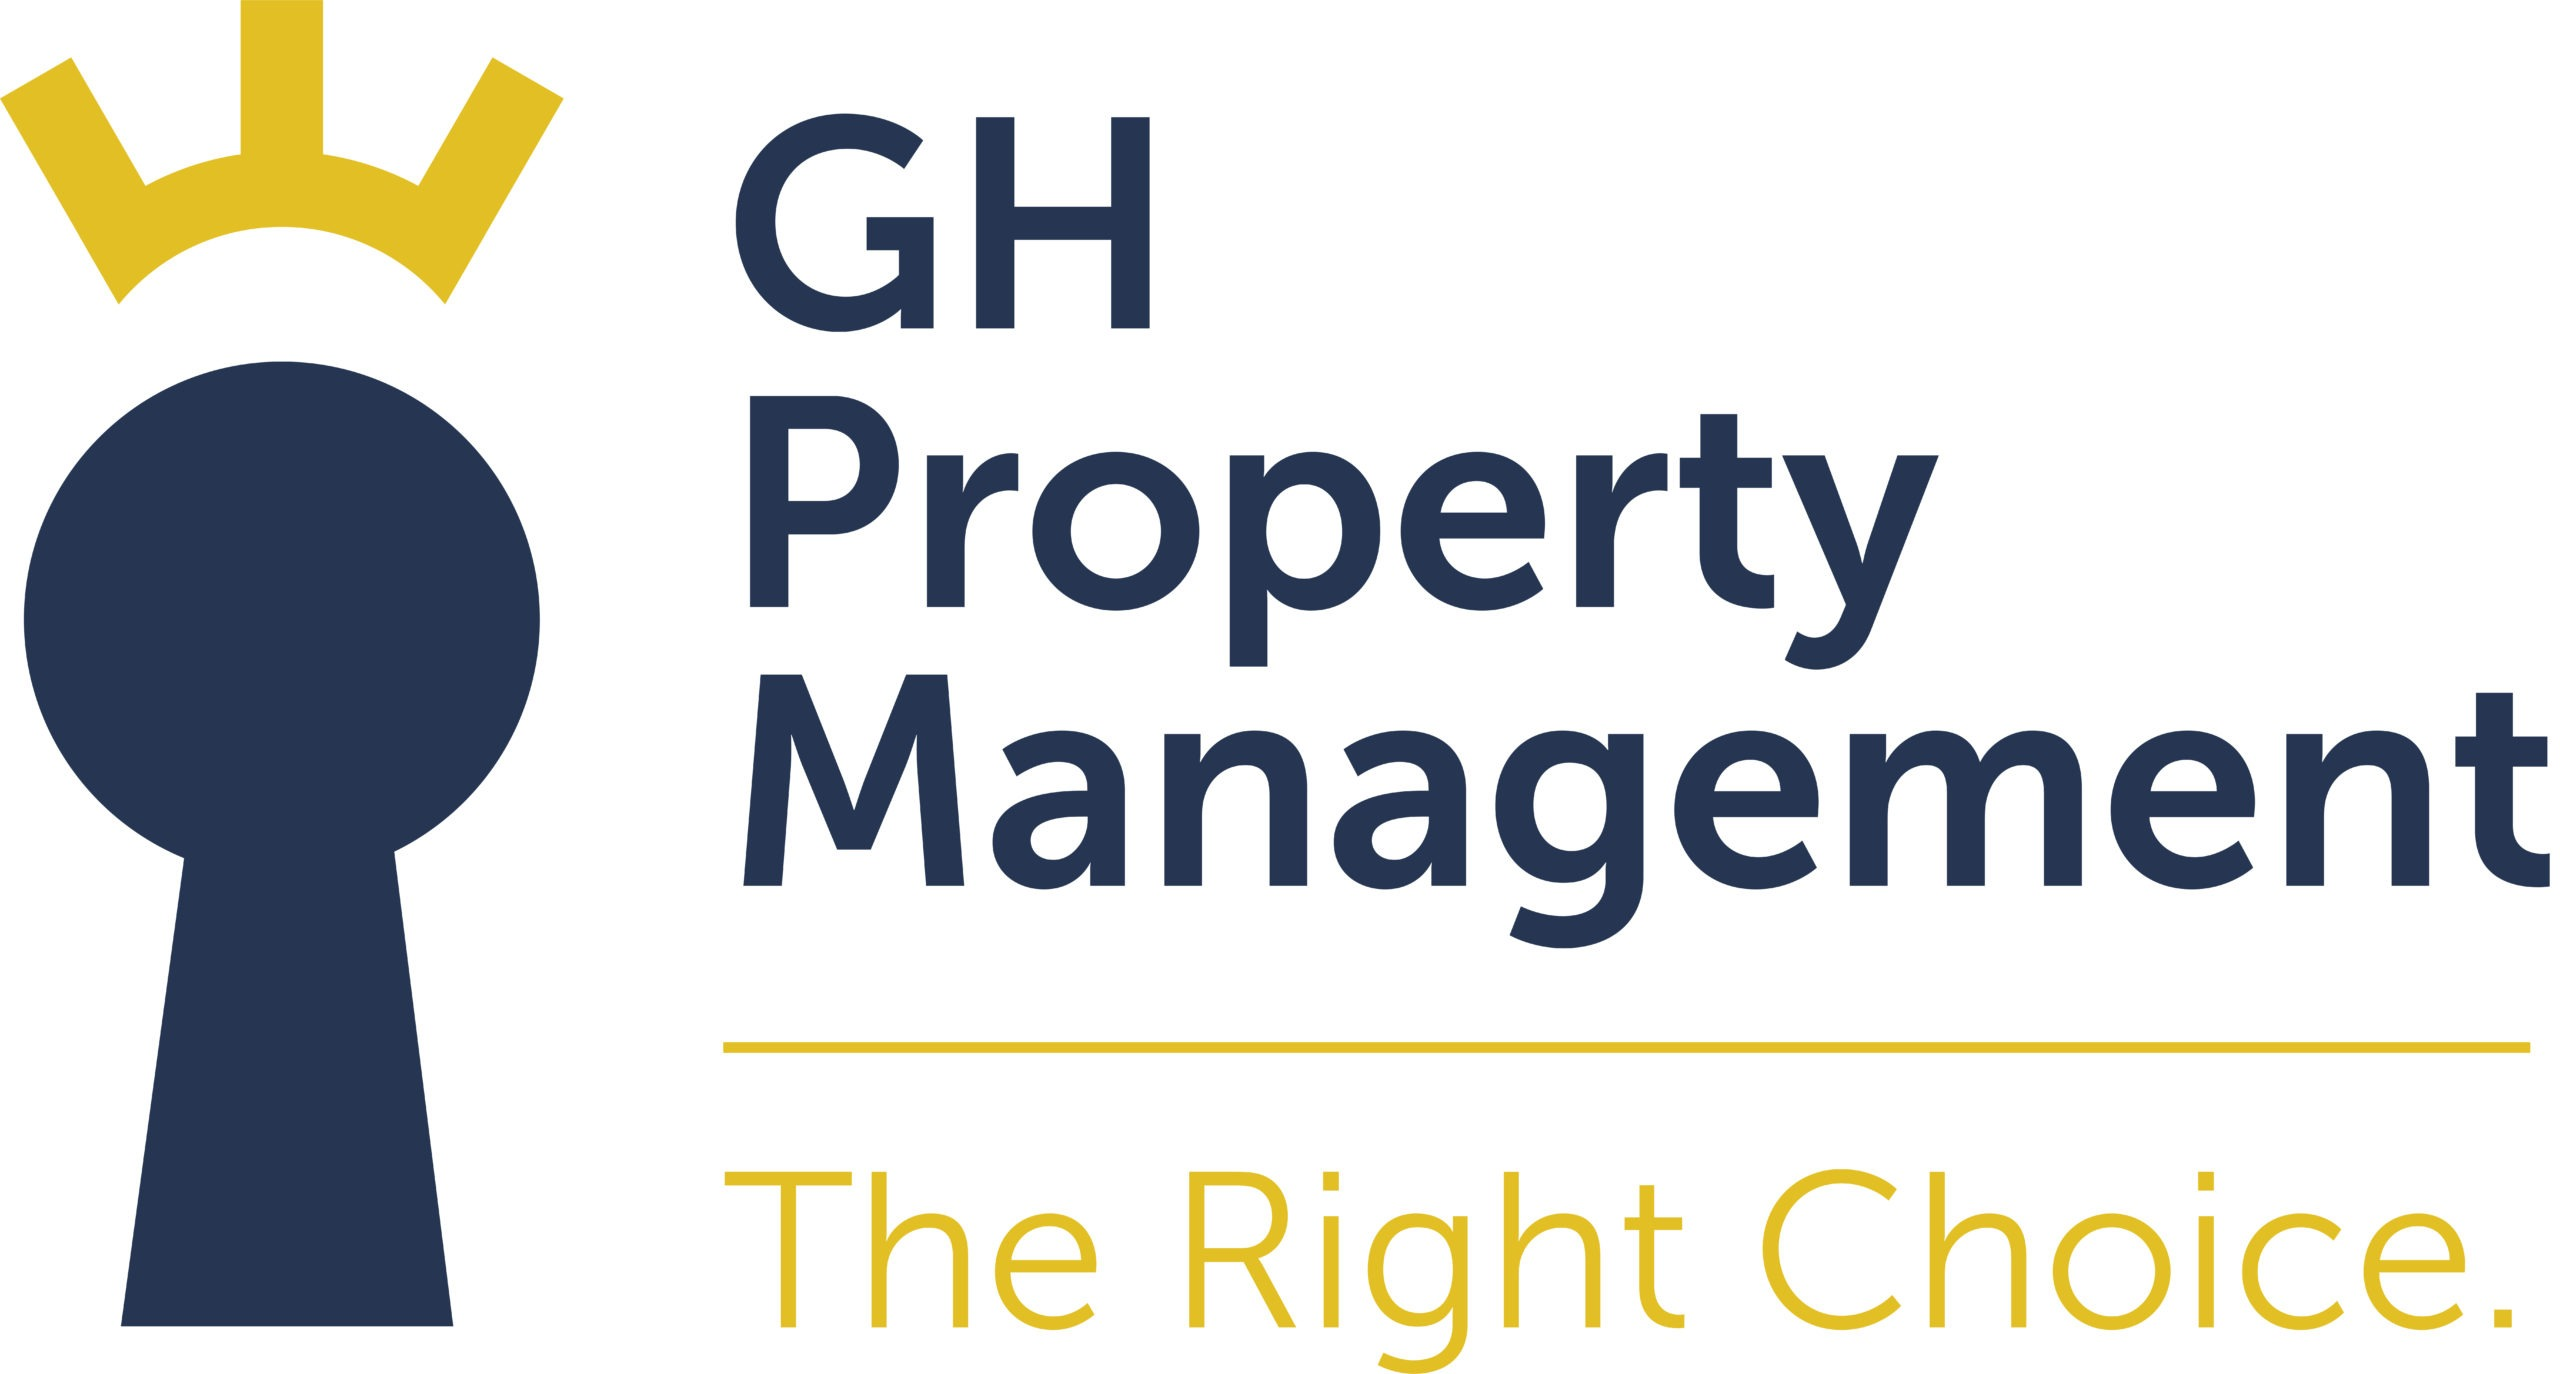 GH Property Management: Happy New Year